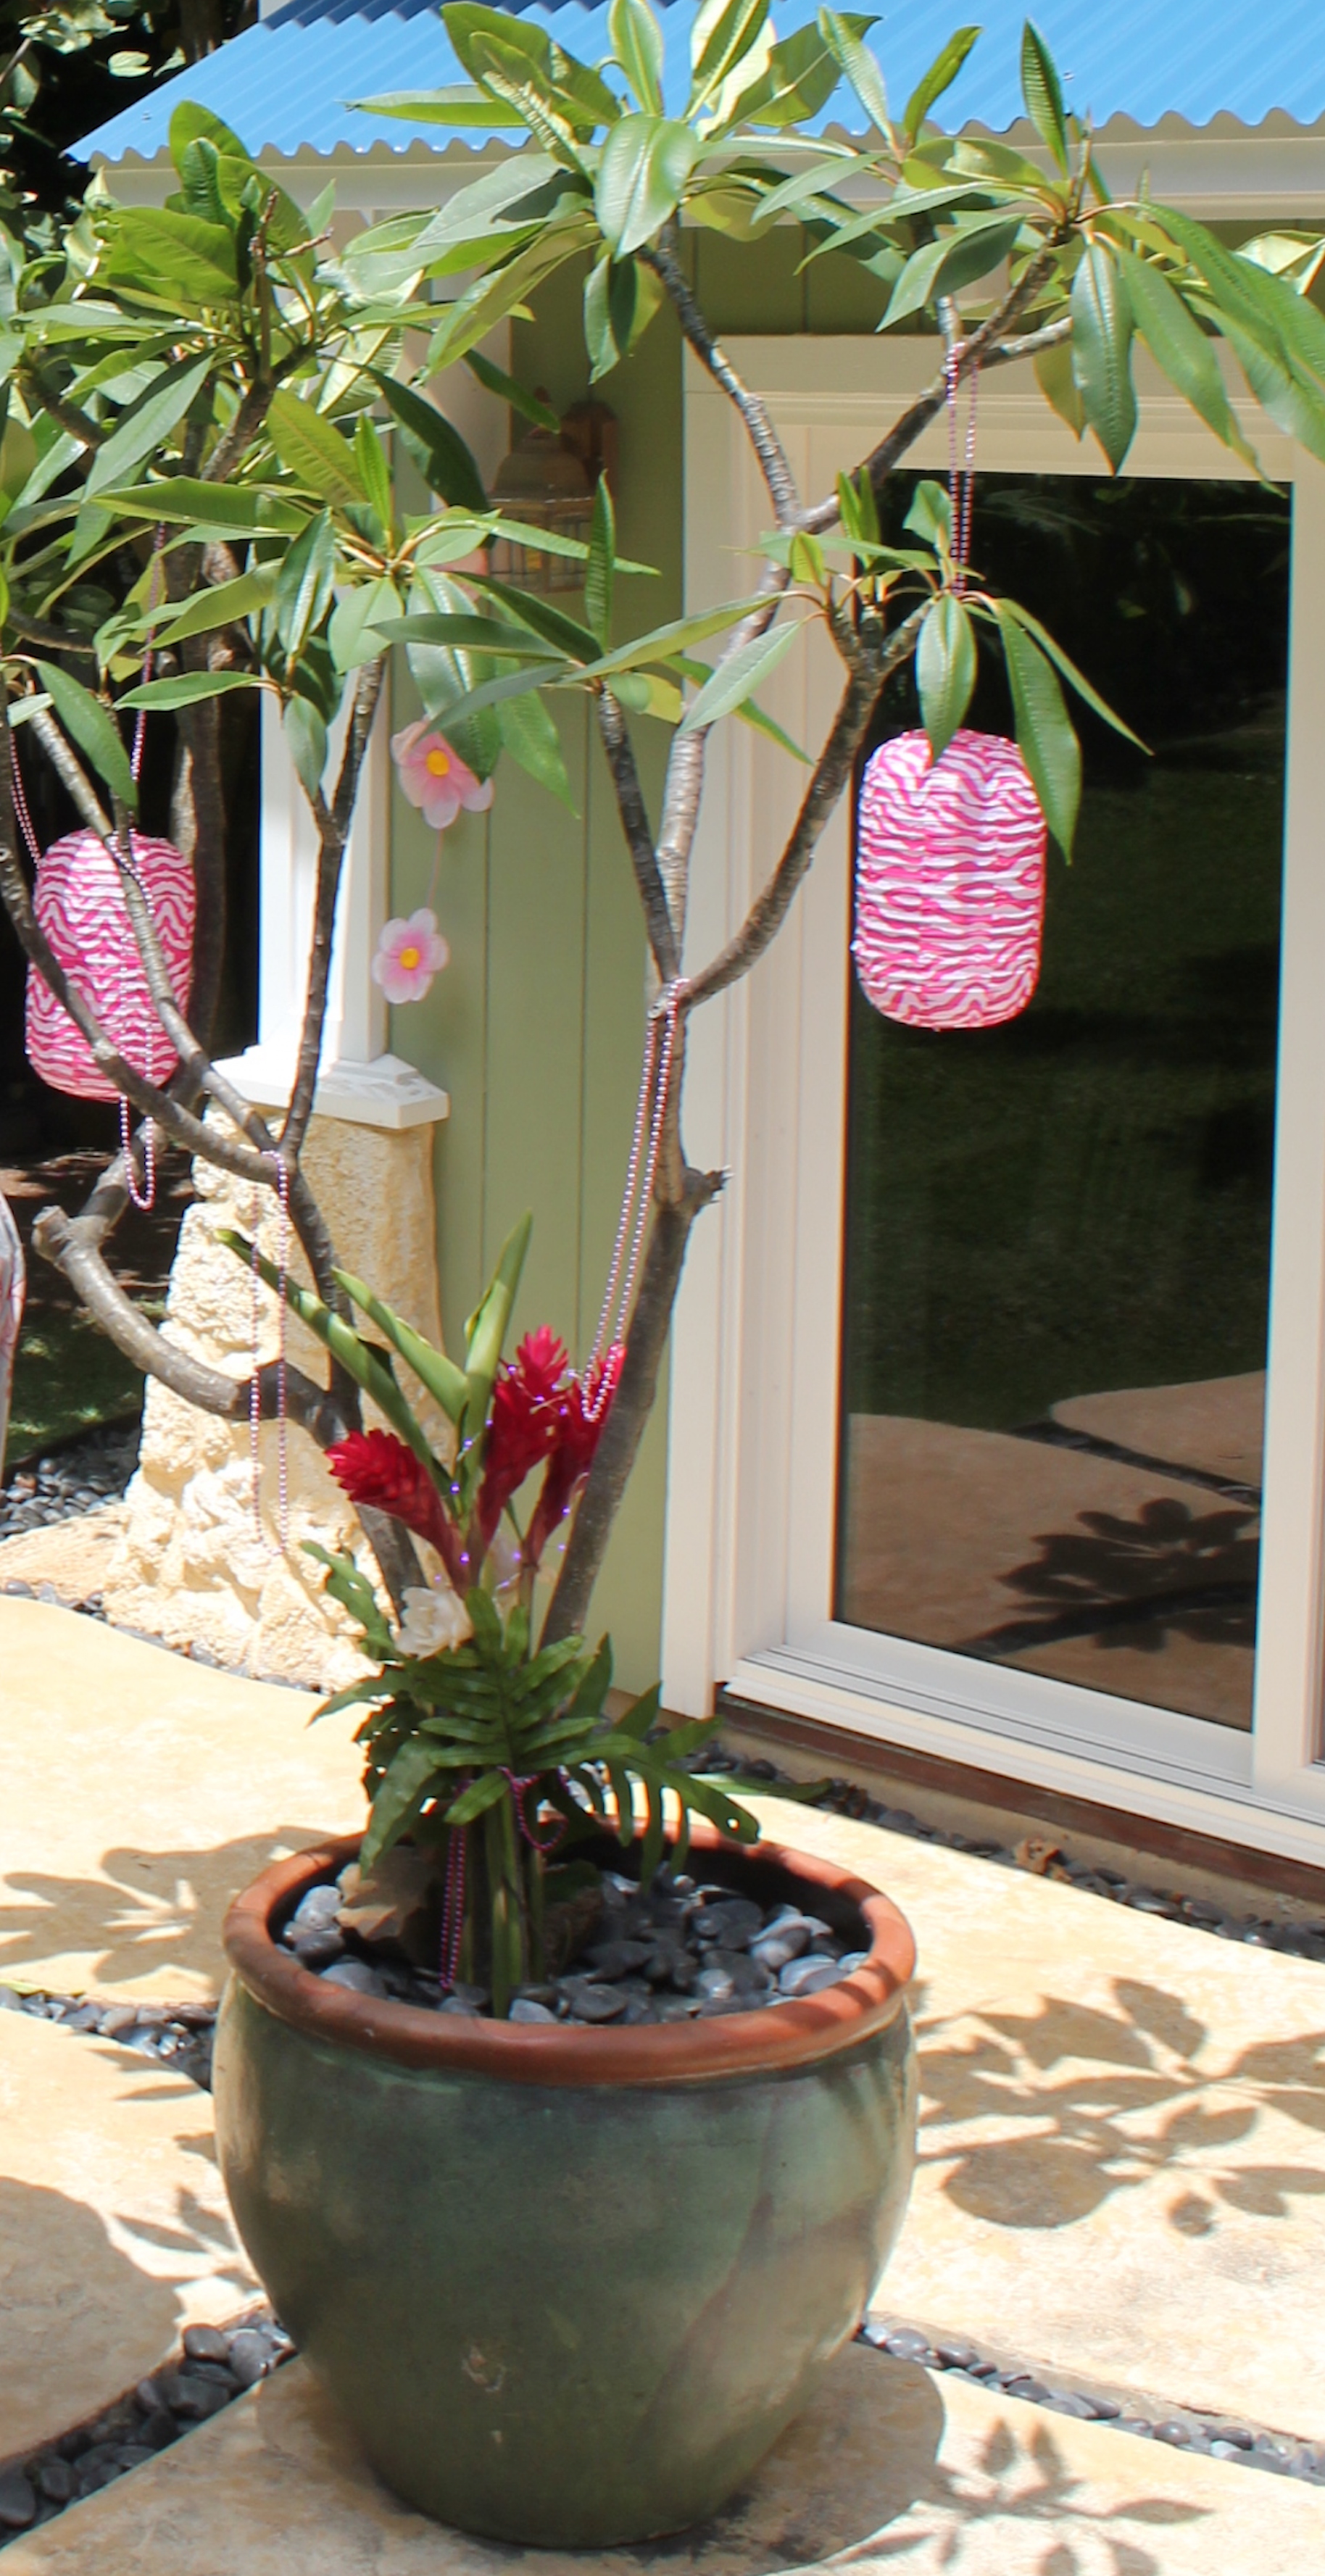 Island Parties - Baby Luau Girl Decorations.jpeg